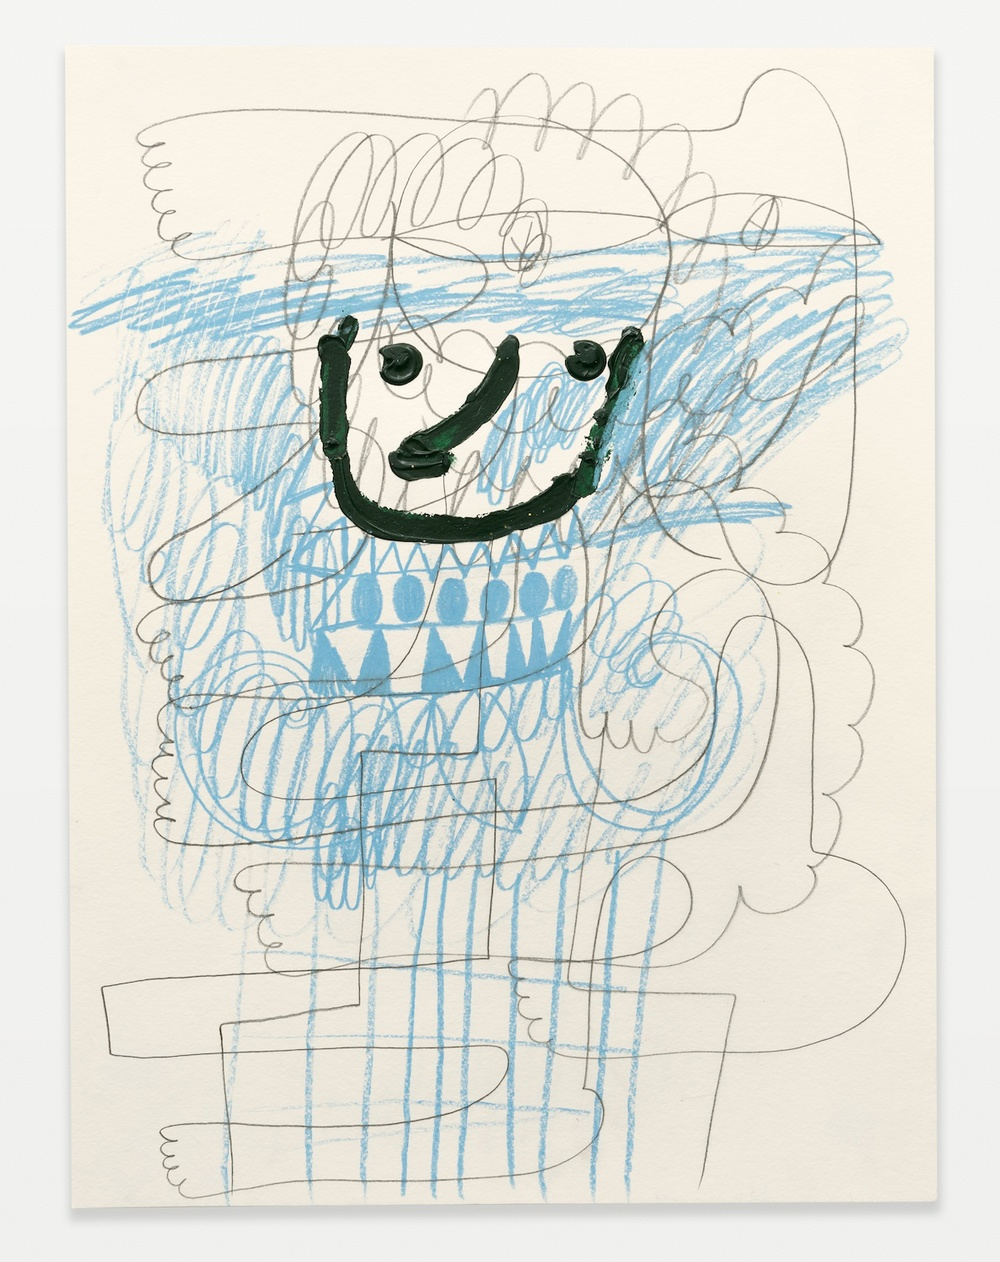 William J. O'Brien  Untitled  2014 Acrylic, colored pencil, and graphite on paper 24h x 18w in WOB963